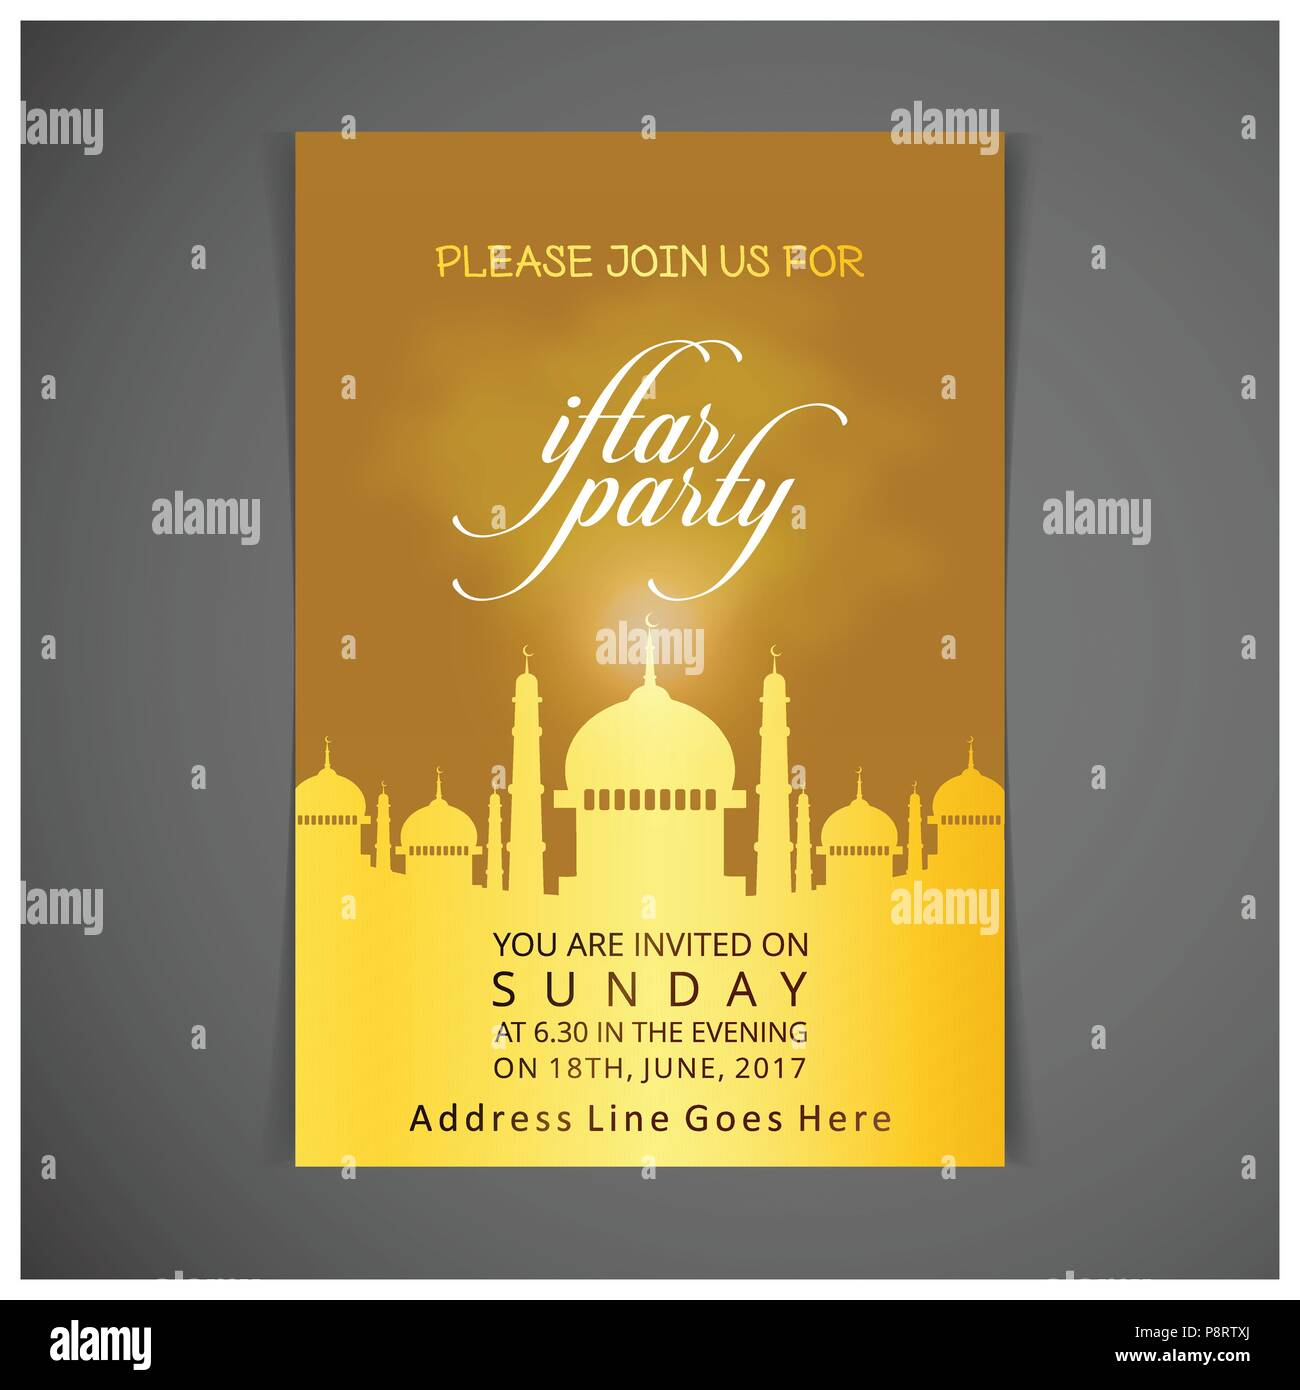 Elegant Iftar Party Invitation Card Design Decorated On Dark Yellow